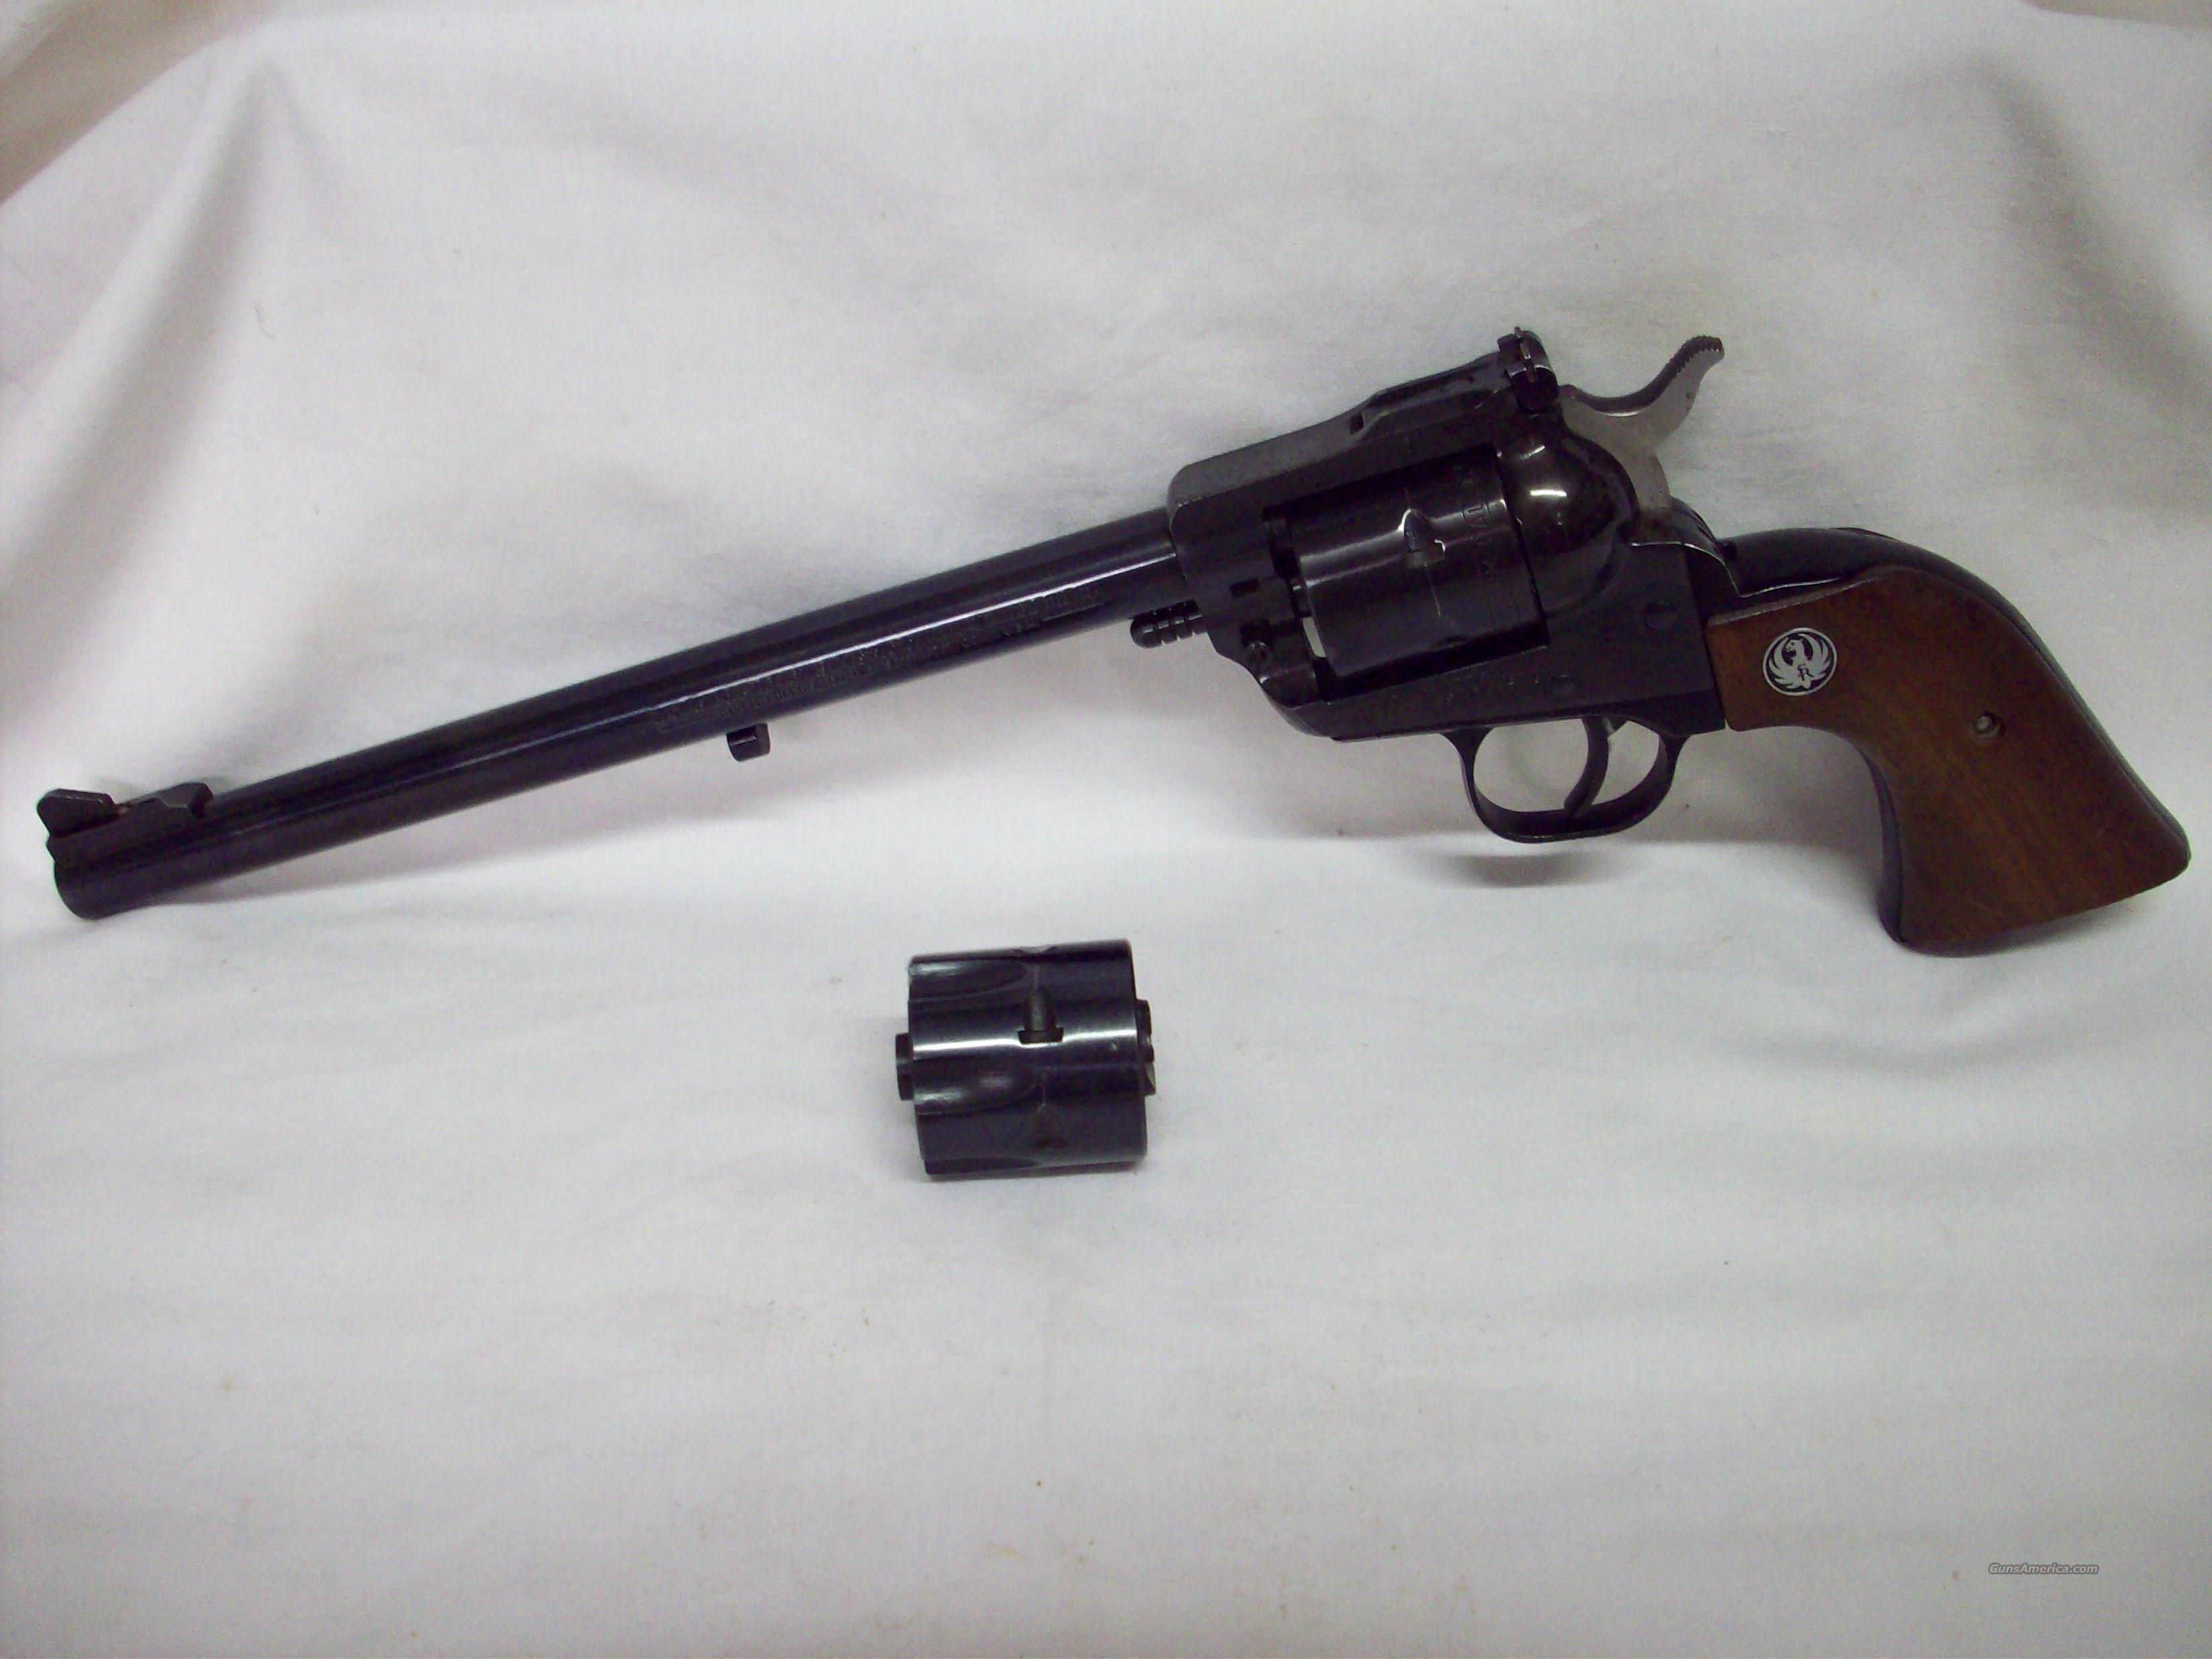 Ruger Single Six combo 22LR/22WMR used  Guns > Pistols > Ruger Single Action Revolvers > Single Six Type